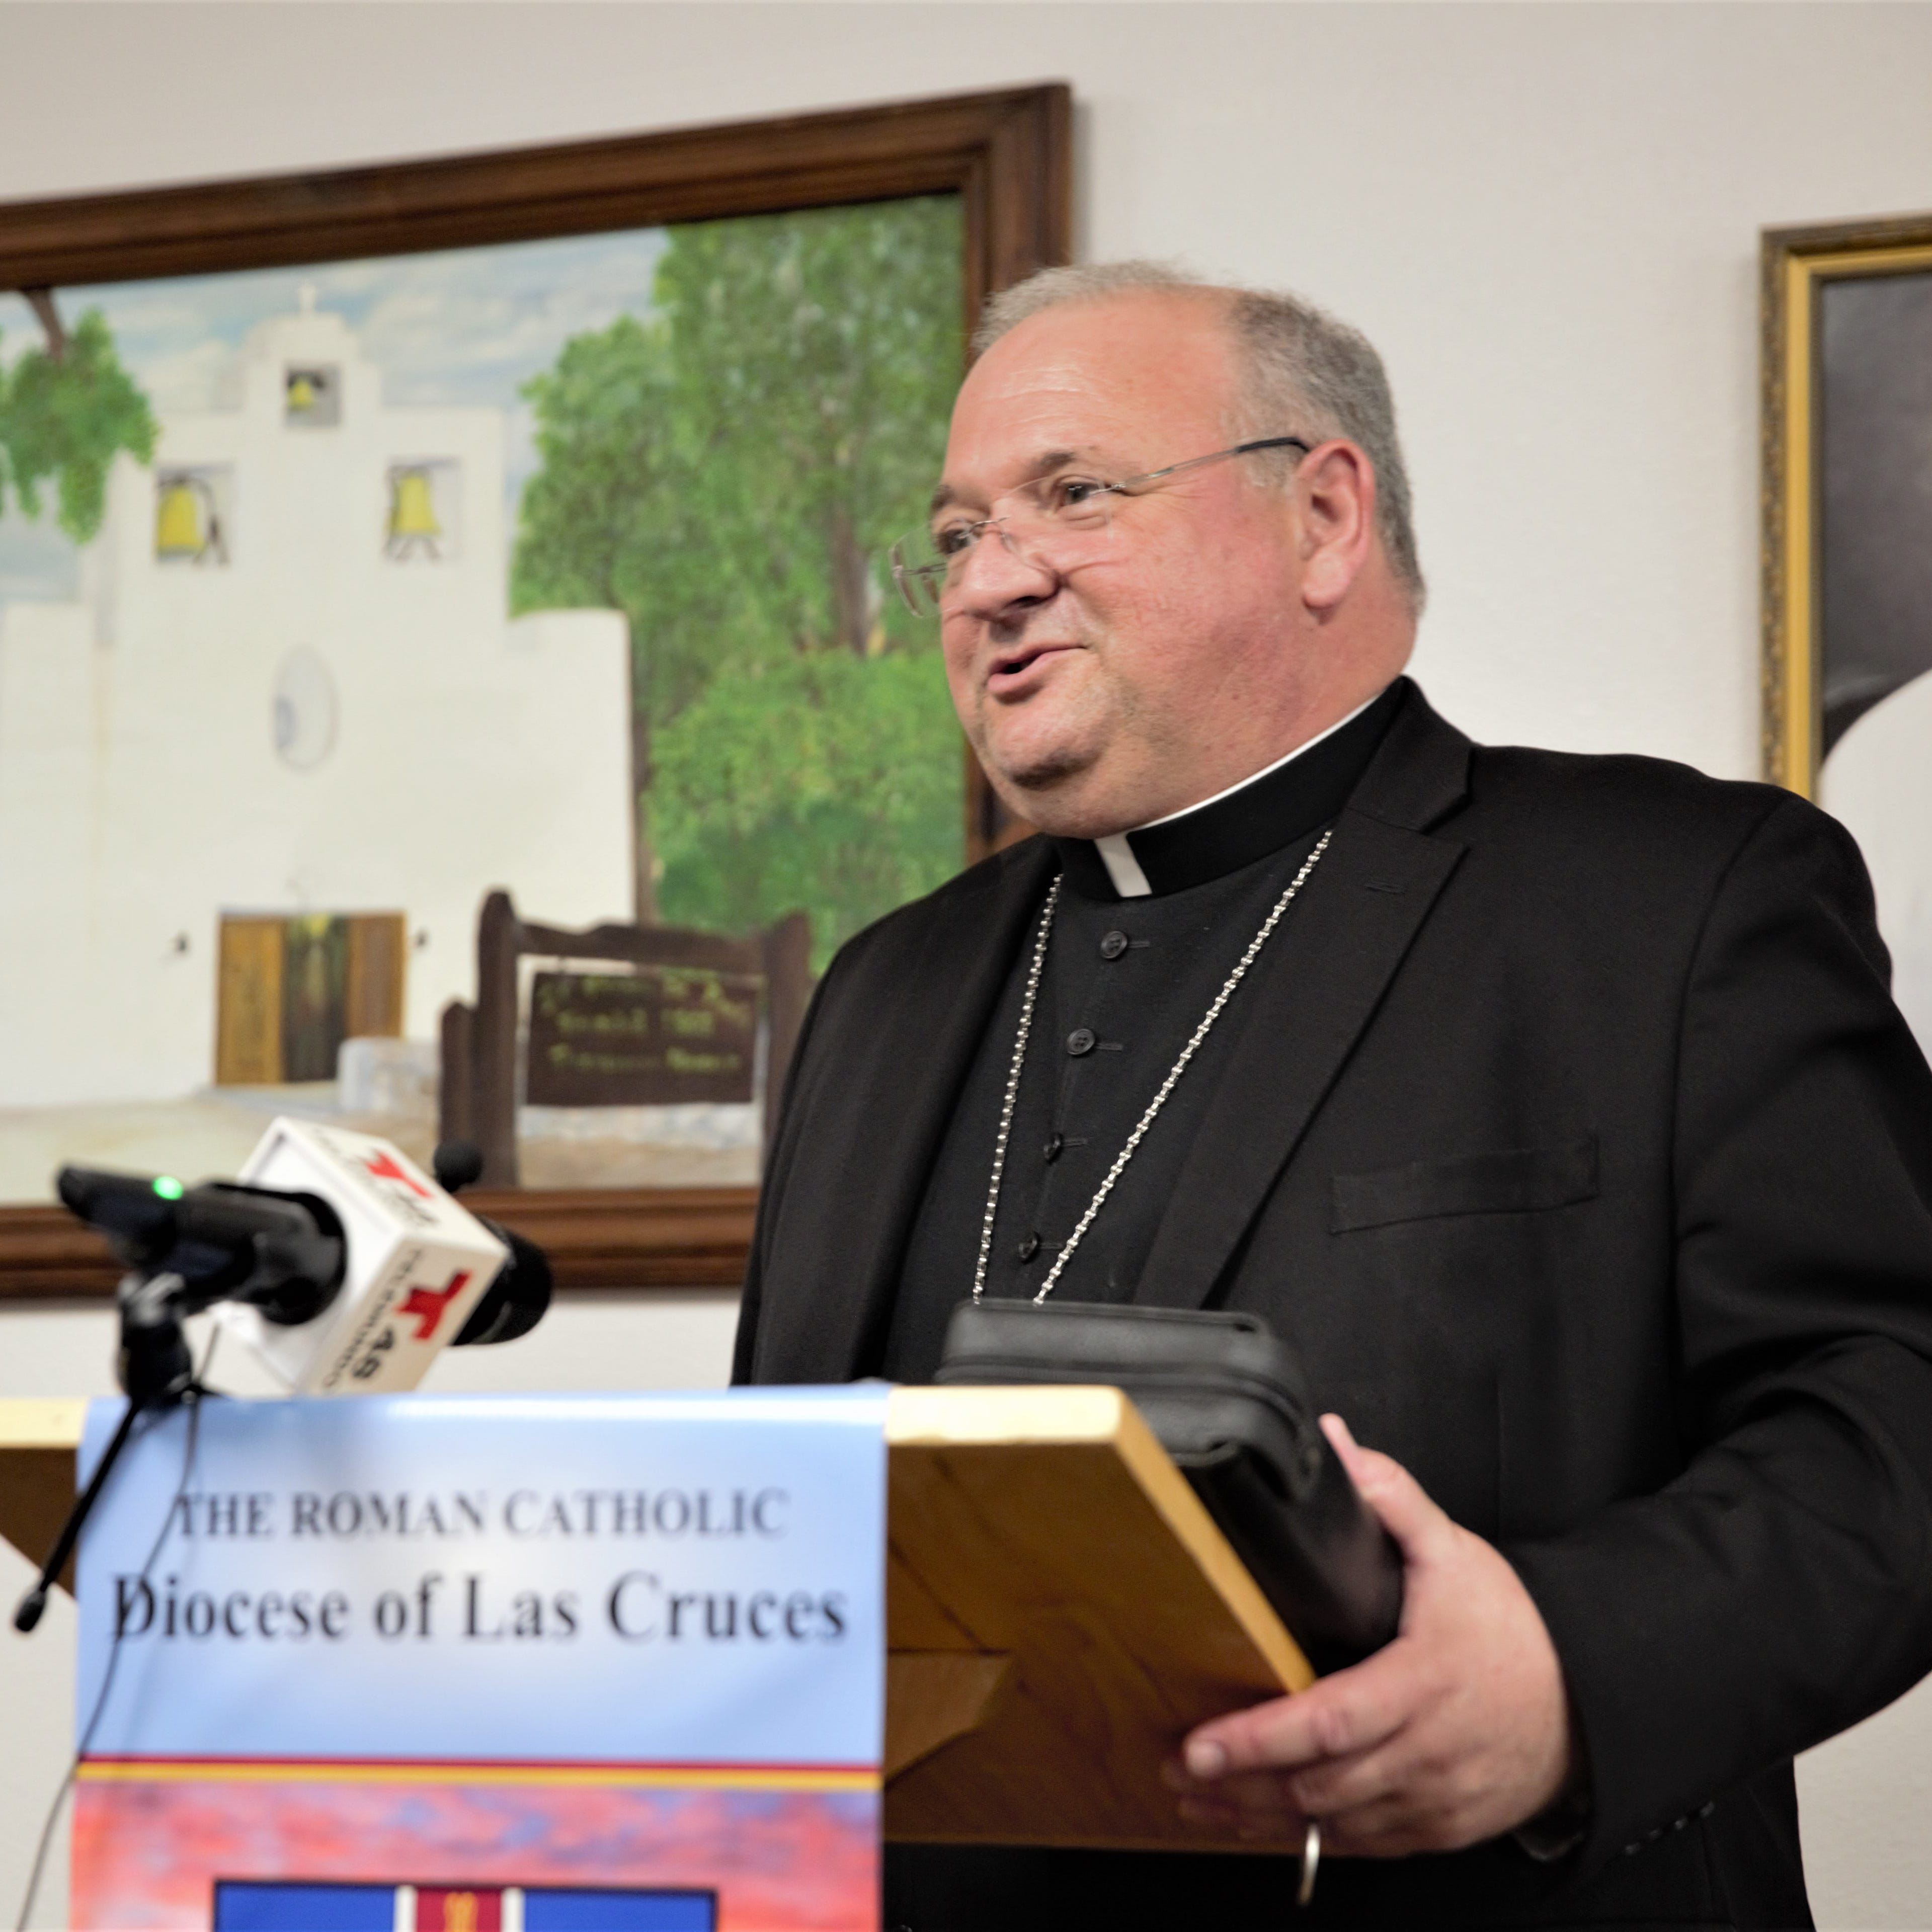 Pope Francis appoints Peter Baldacchino as new bishop of the Las Cruces Diocese